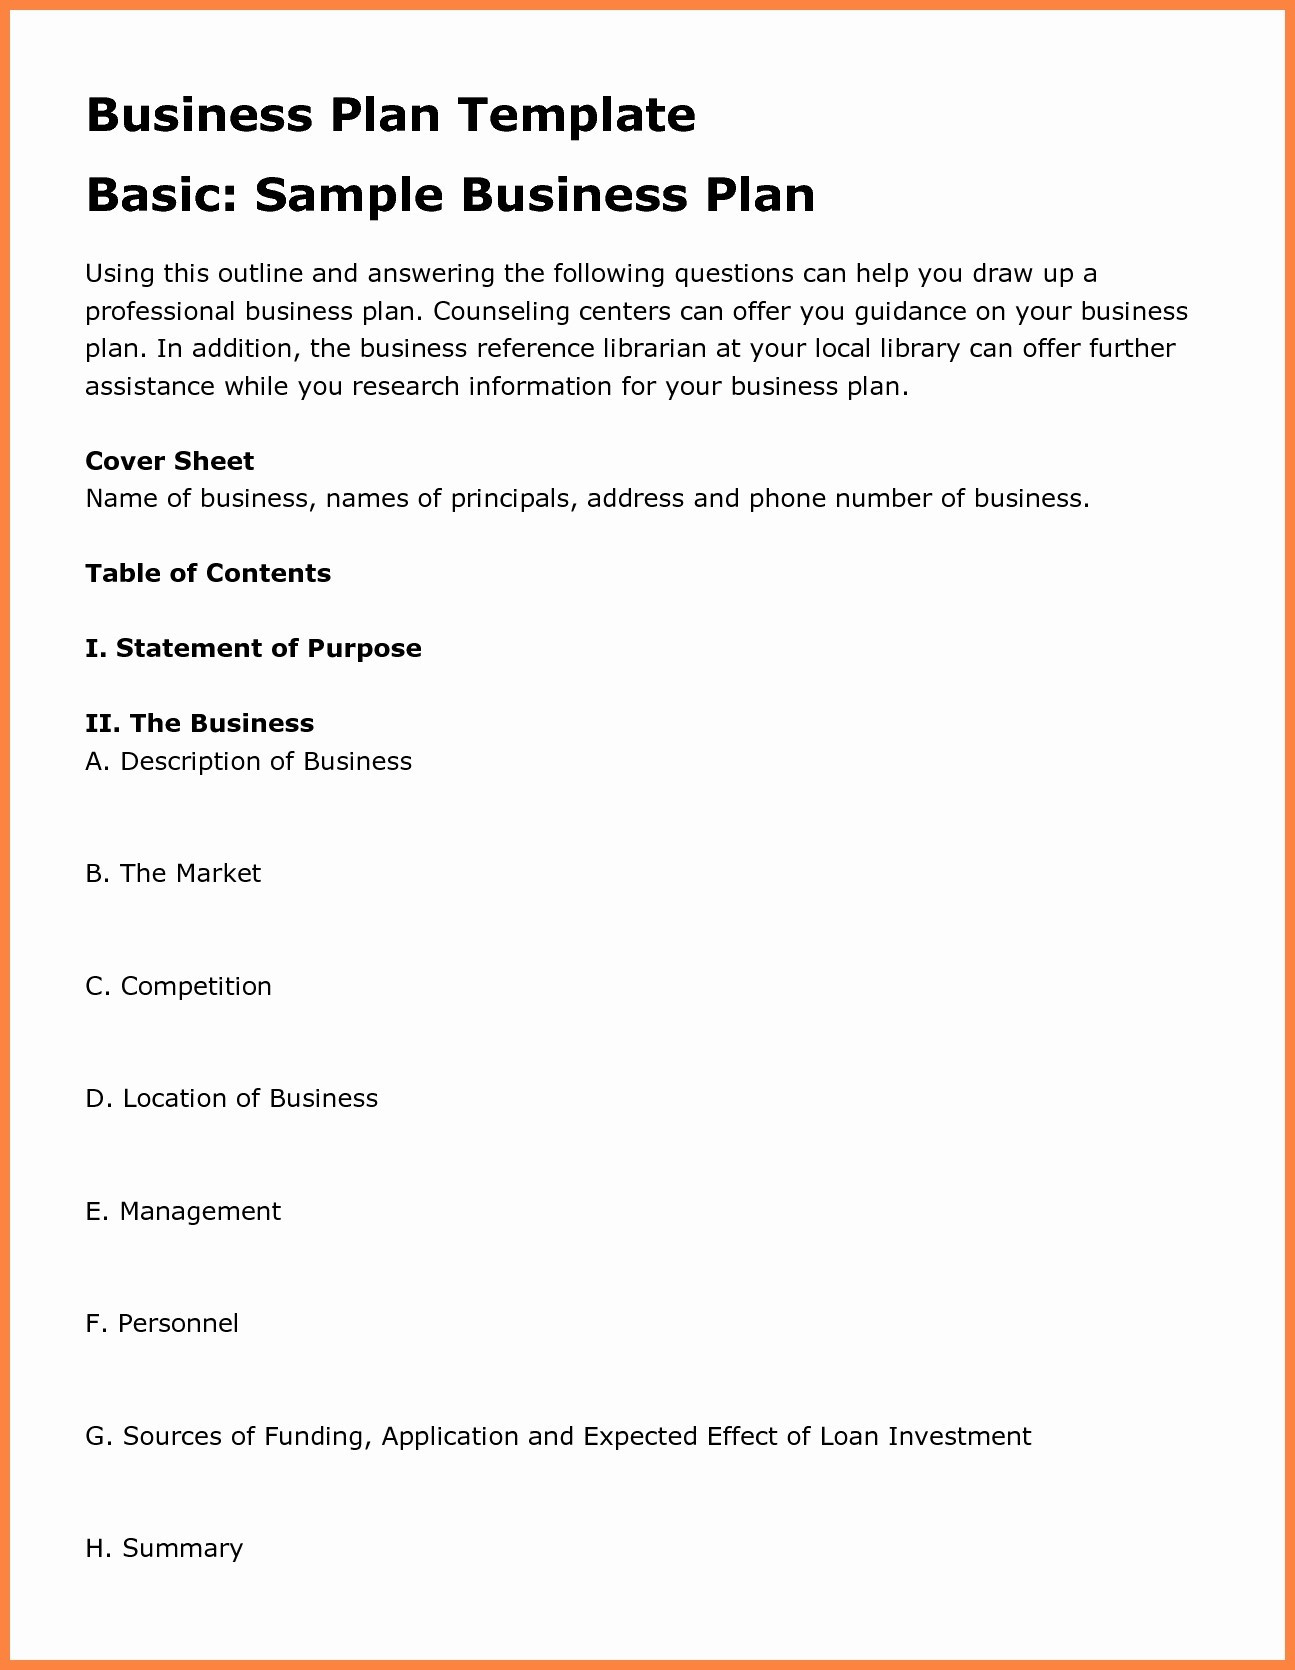 Free Pub Business Plan Template Brewery Popular Valid ~ Tinypetition Pertaining To Free Pub Business Plan Template